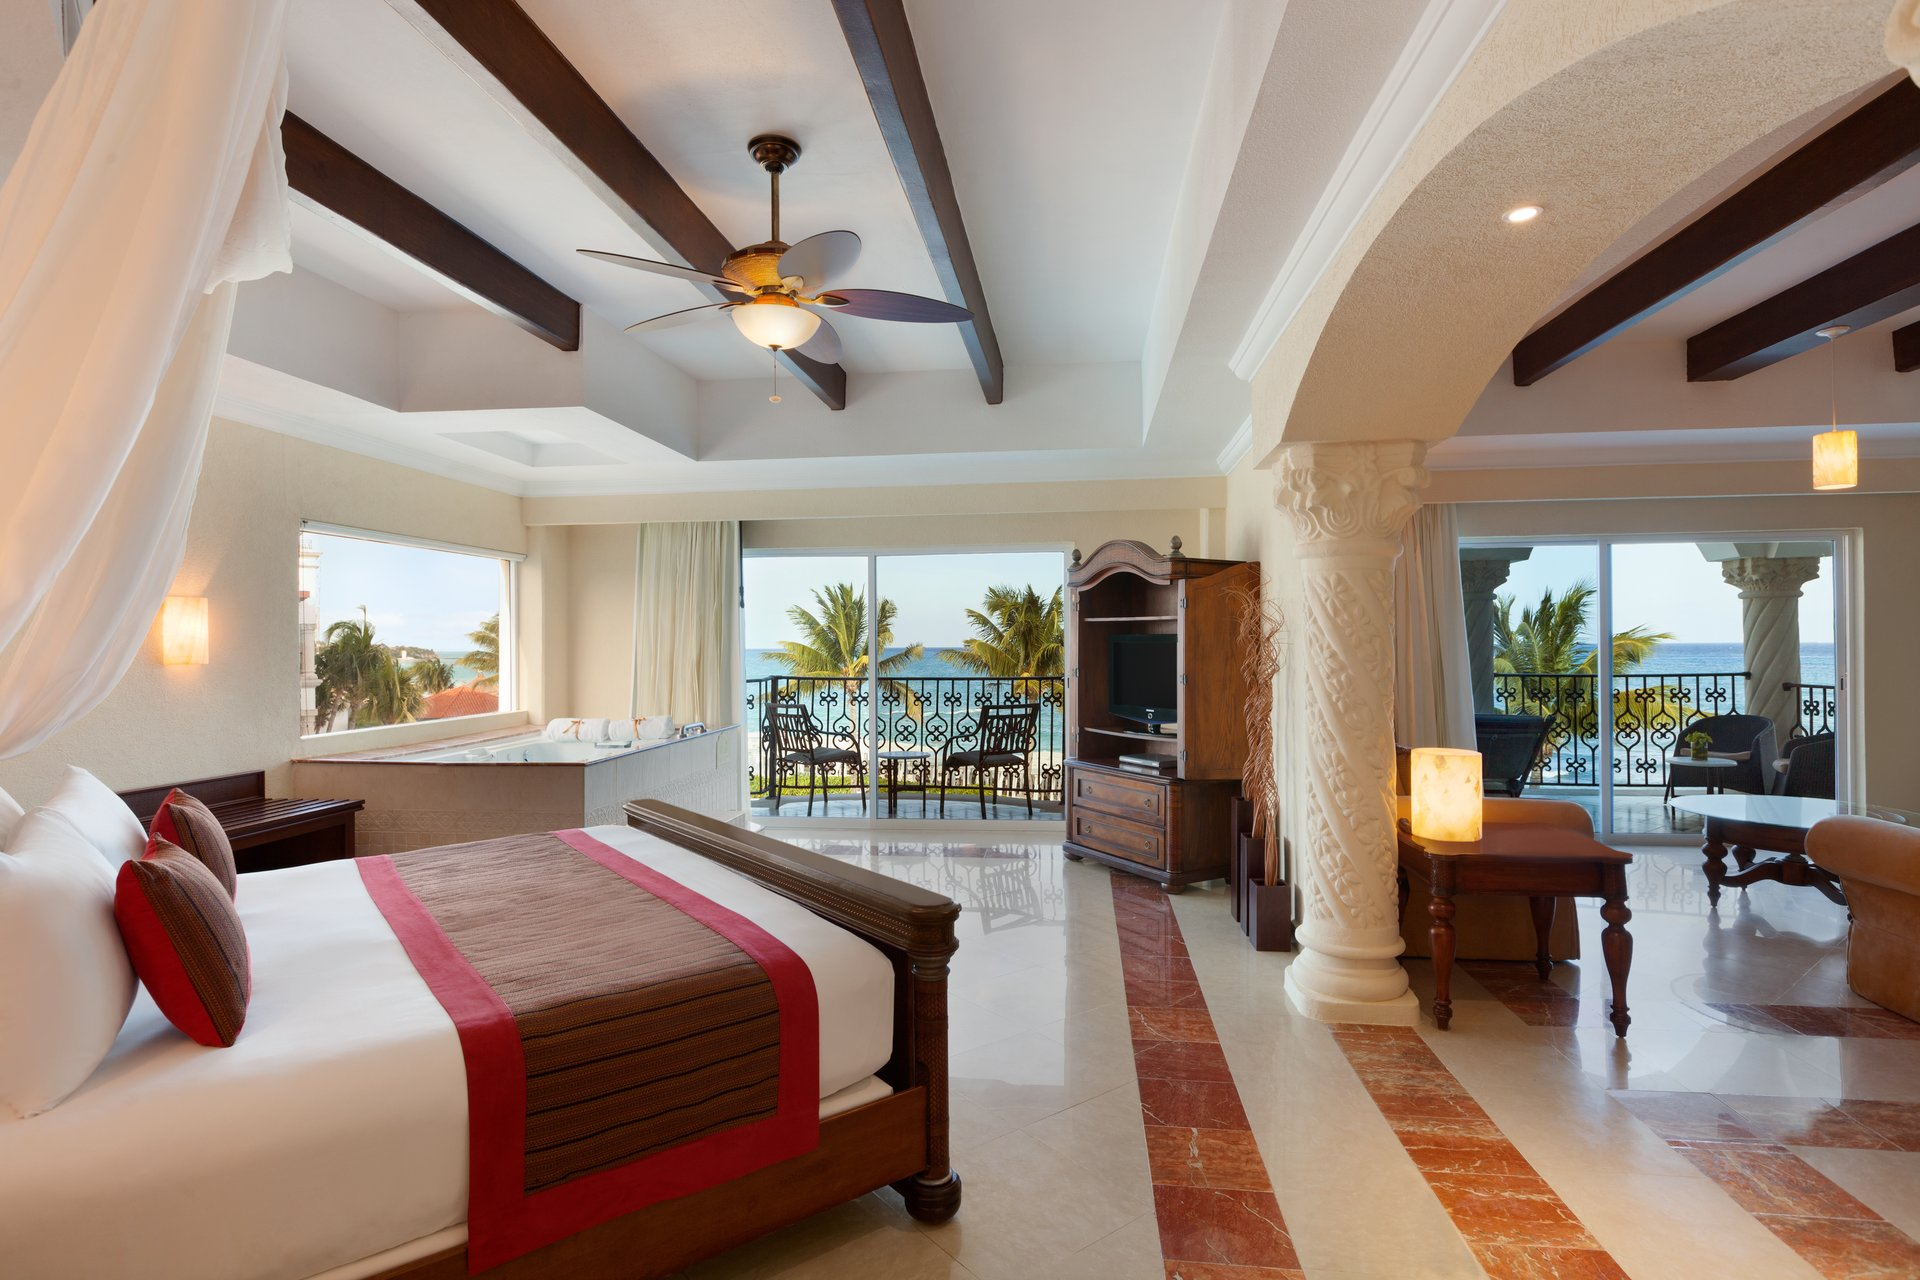 The Royal Playa Del Carmen Master Suite